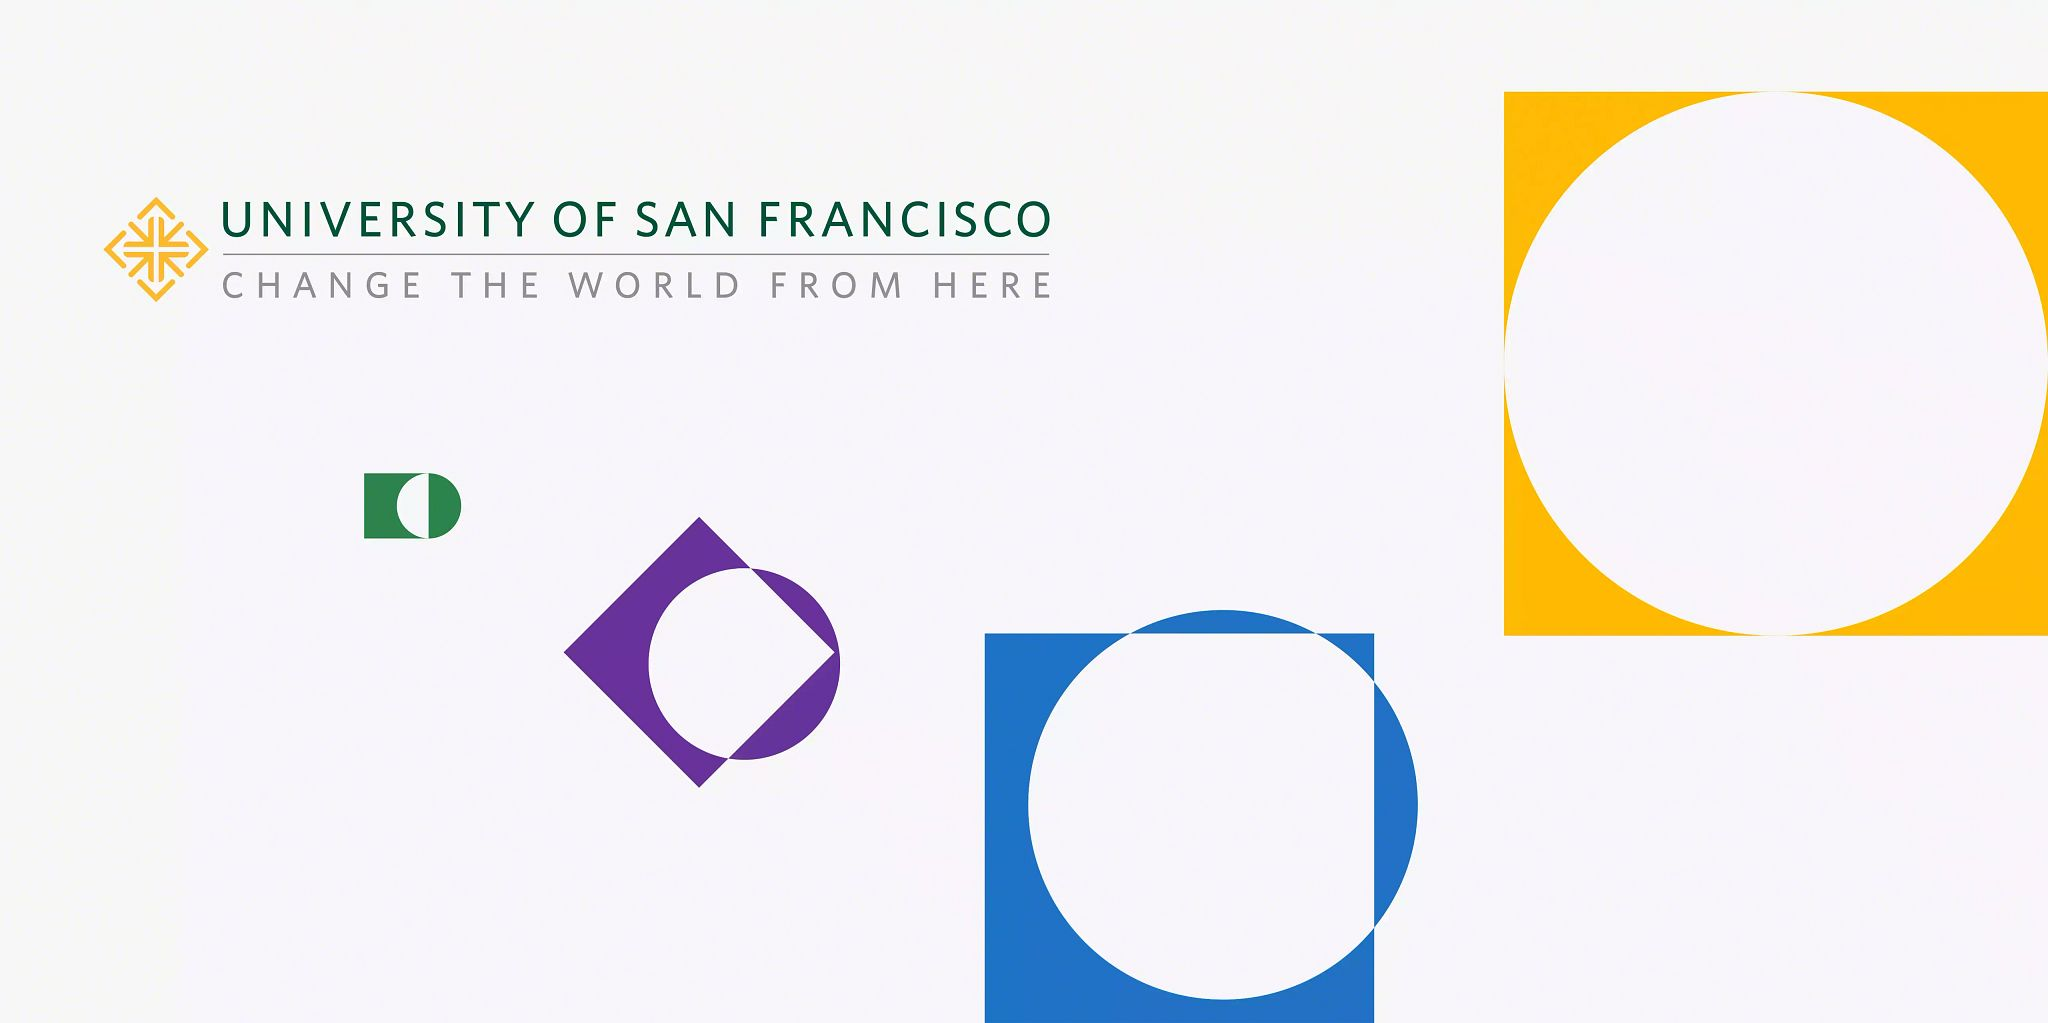 Article header image. University of San Francisco logo in the upper left corner. Four solid colored squares in various sizes with similar-sized white circles moving through the squares. The smallest square has the circle halfway through the square, where the largest square has the circle fully in the middle of it.